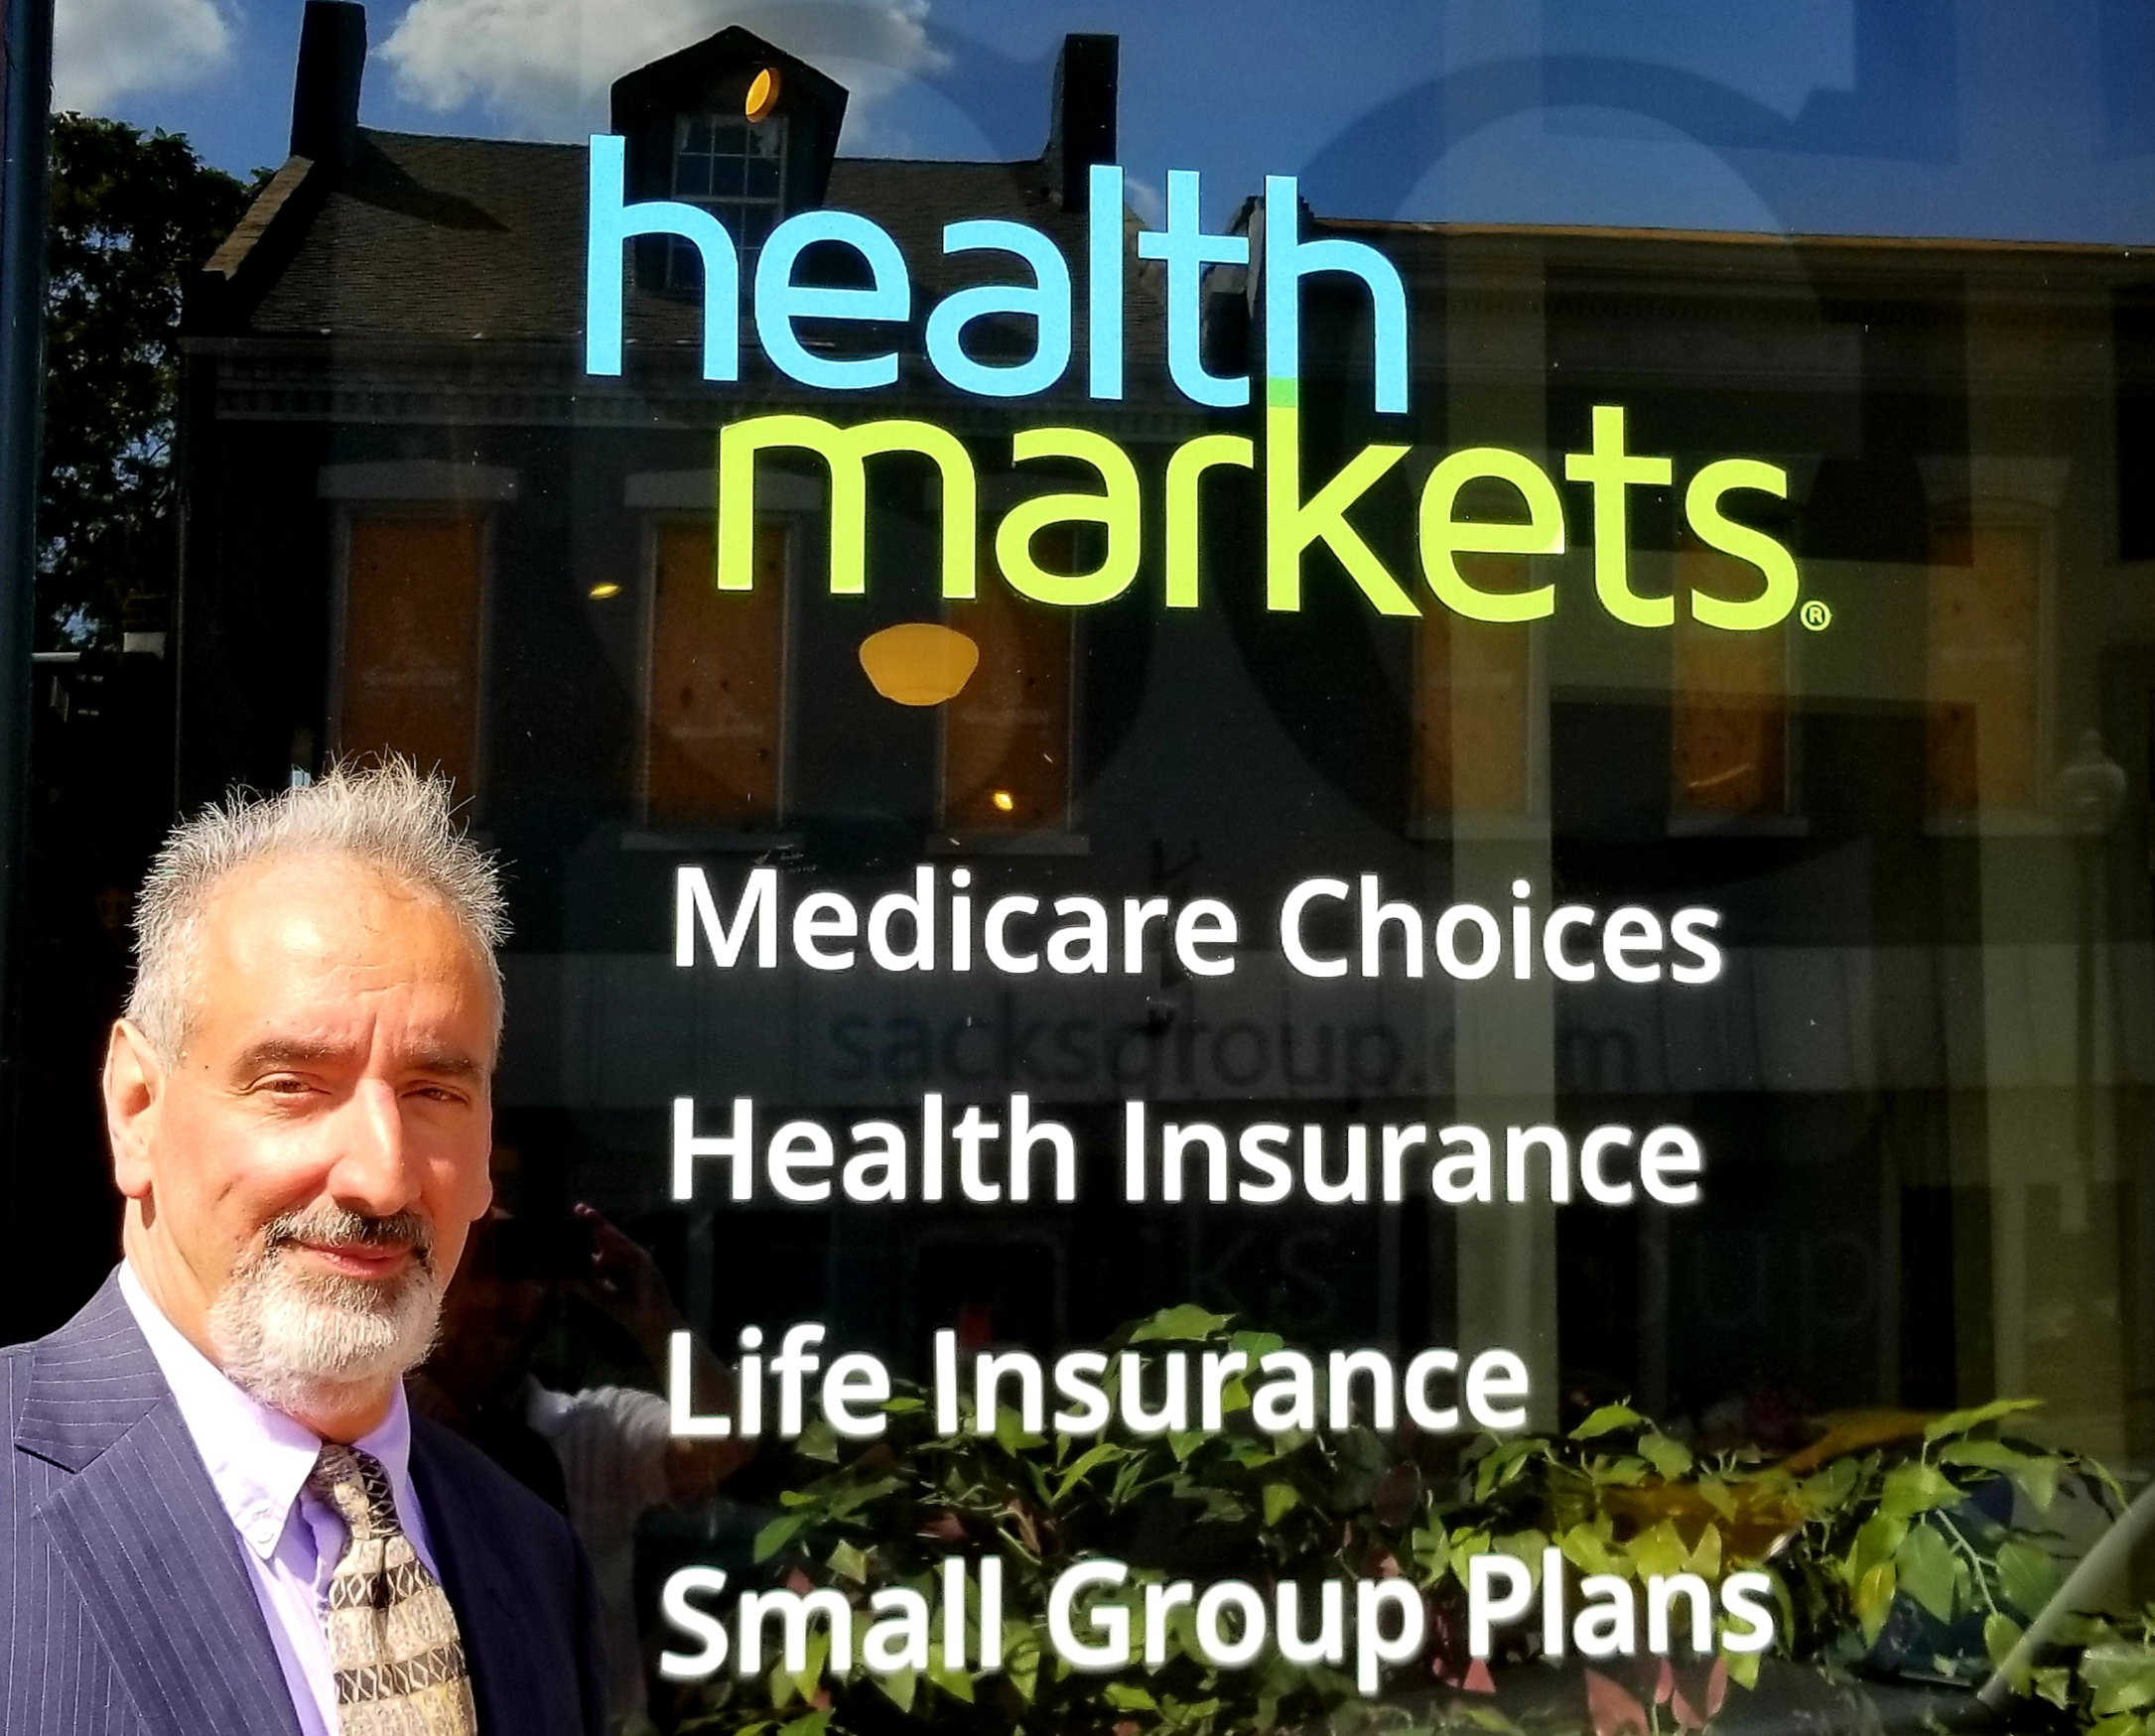 Mark Crenshaw | Health and Life Insurance Agent | St Louis, MO 63129